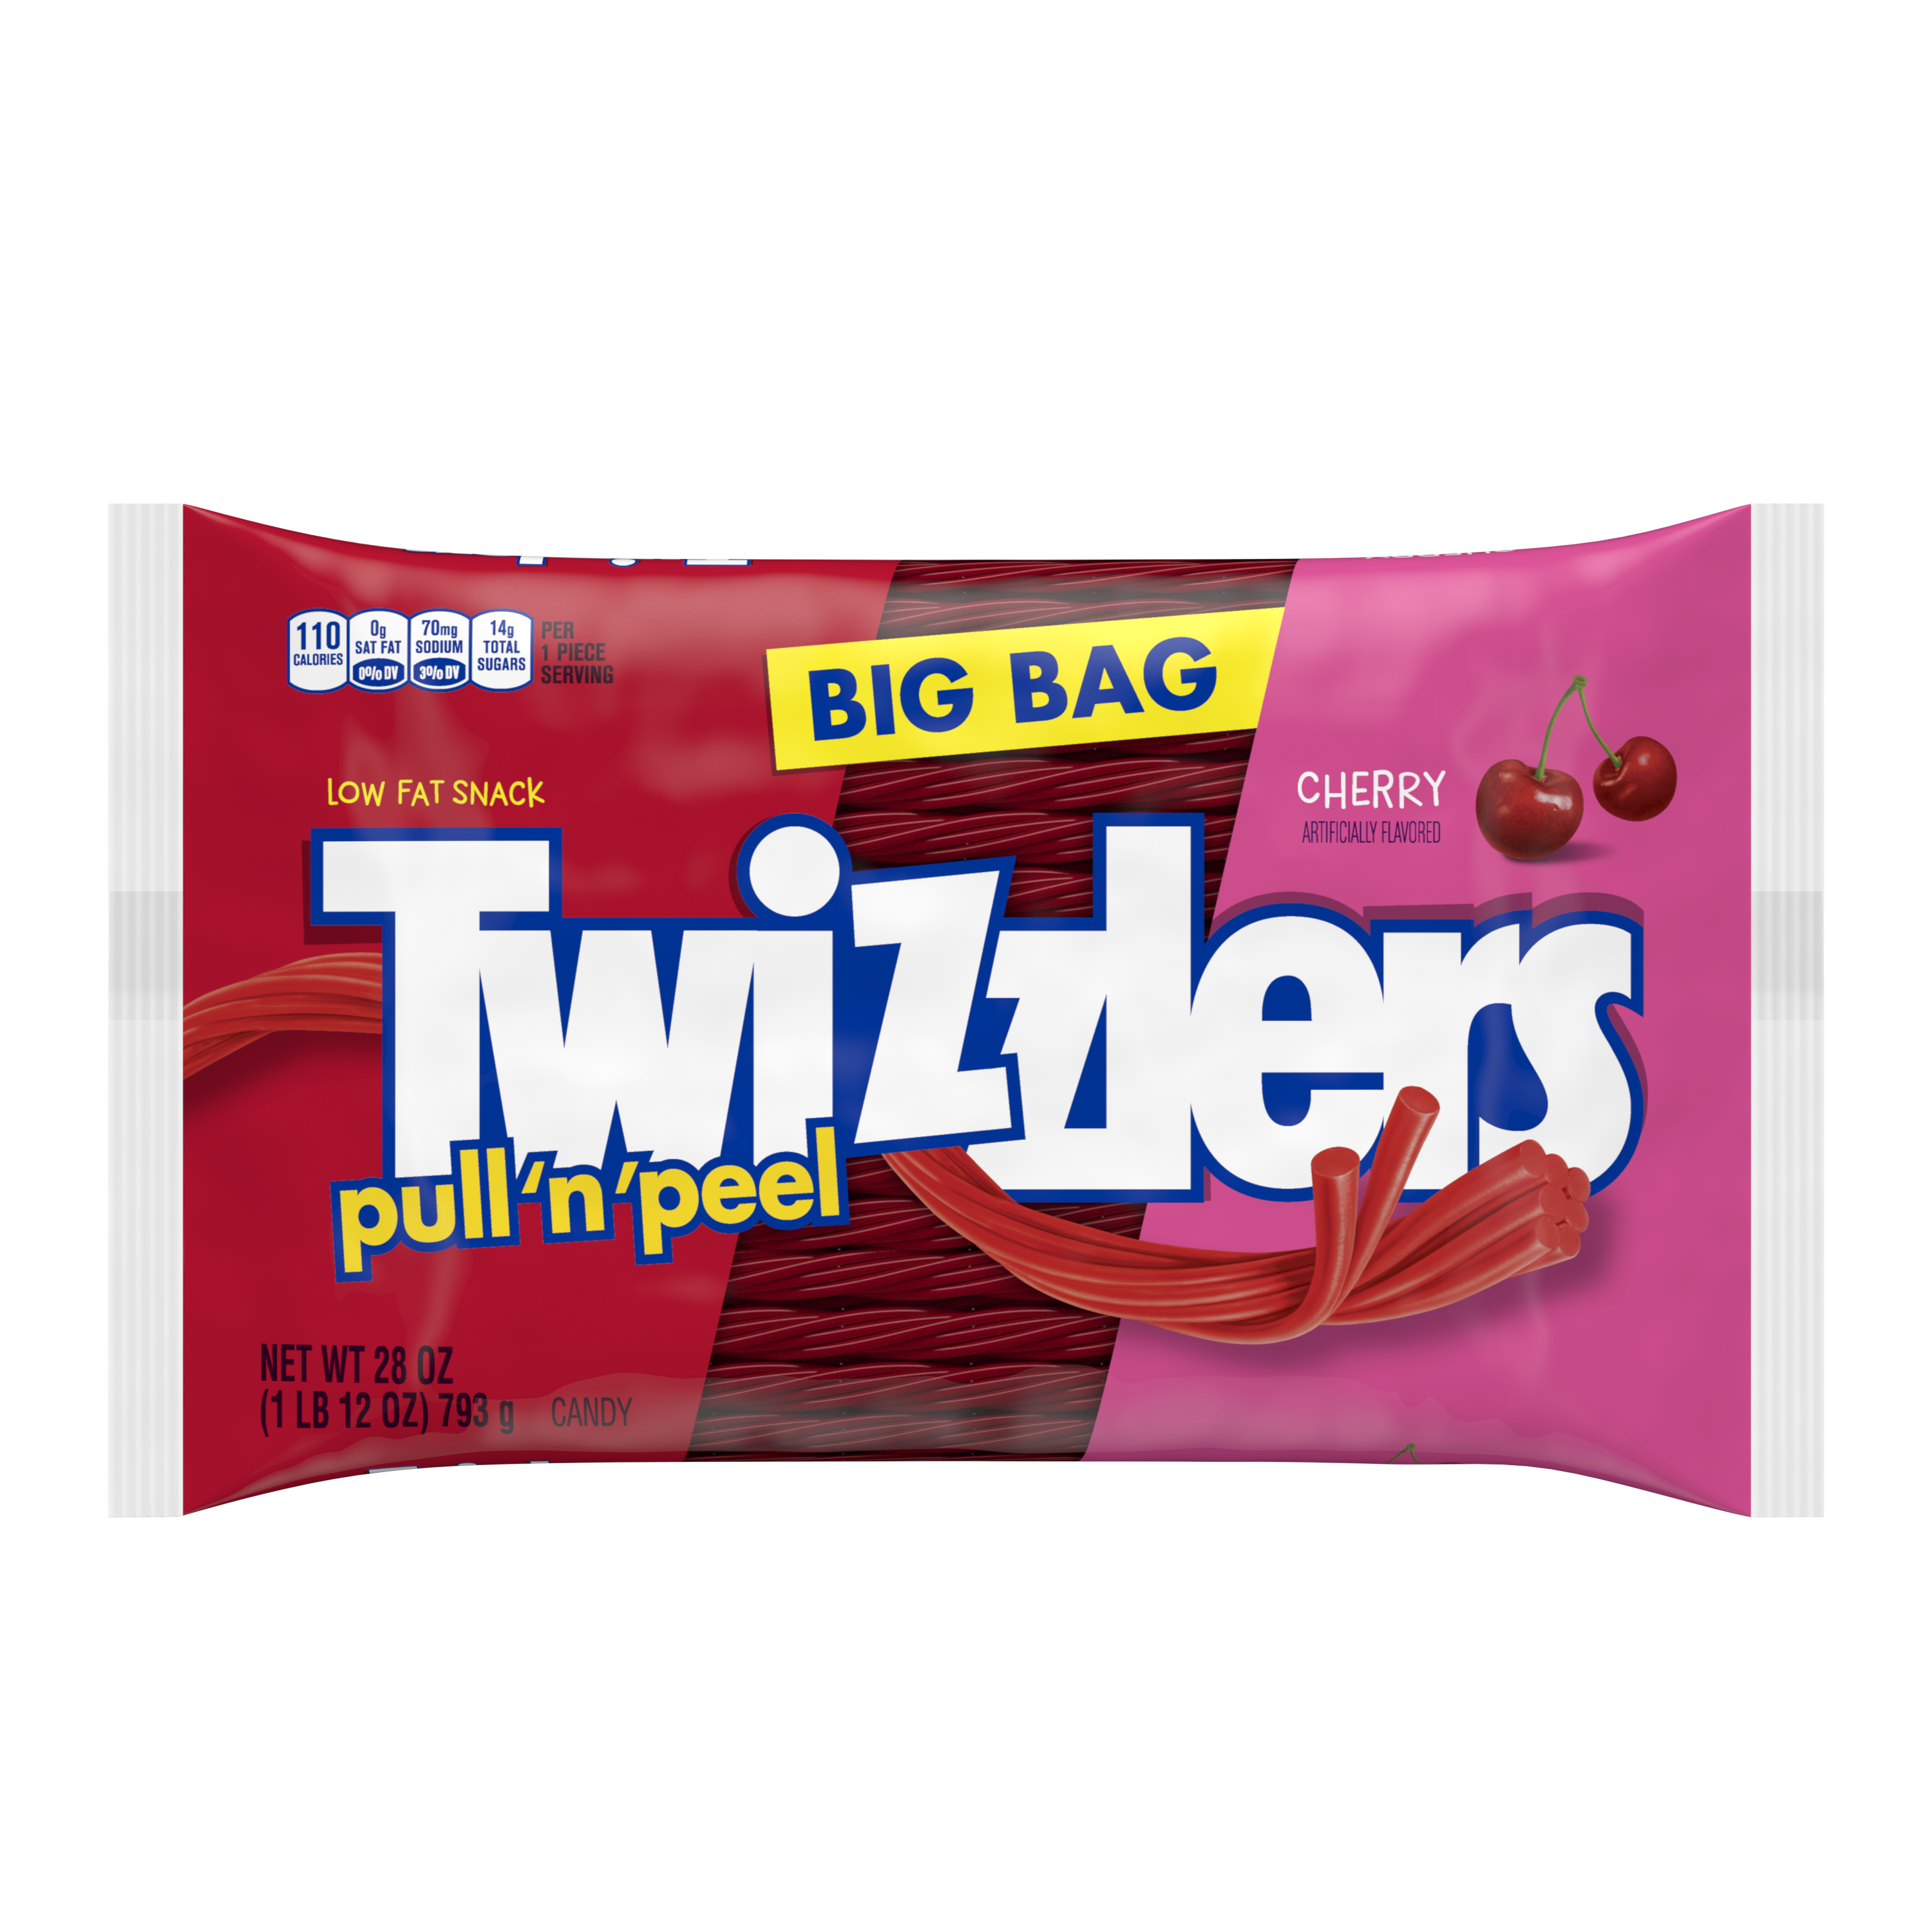 TWIZZLERS PULL 'N' PEEL Cherry Flavored Candy, 28 oz bag - Front of Package